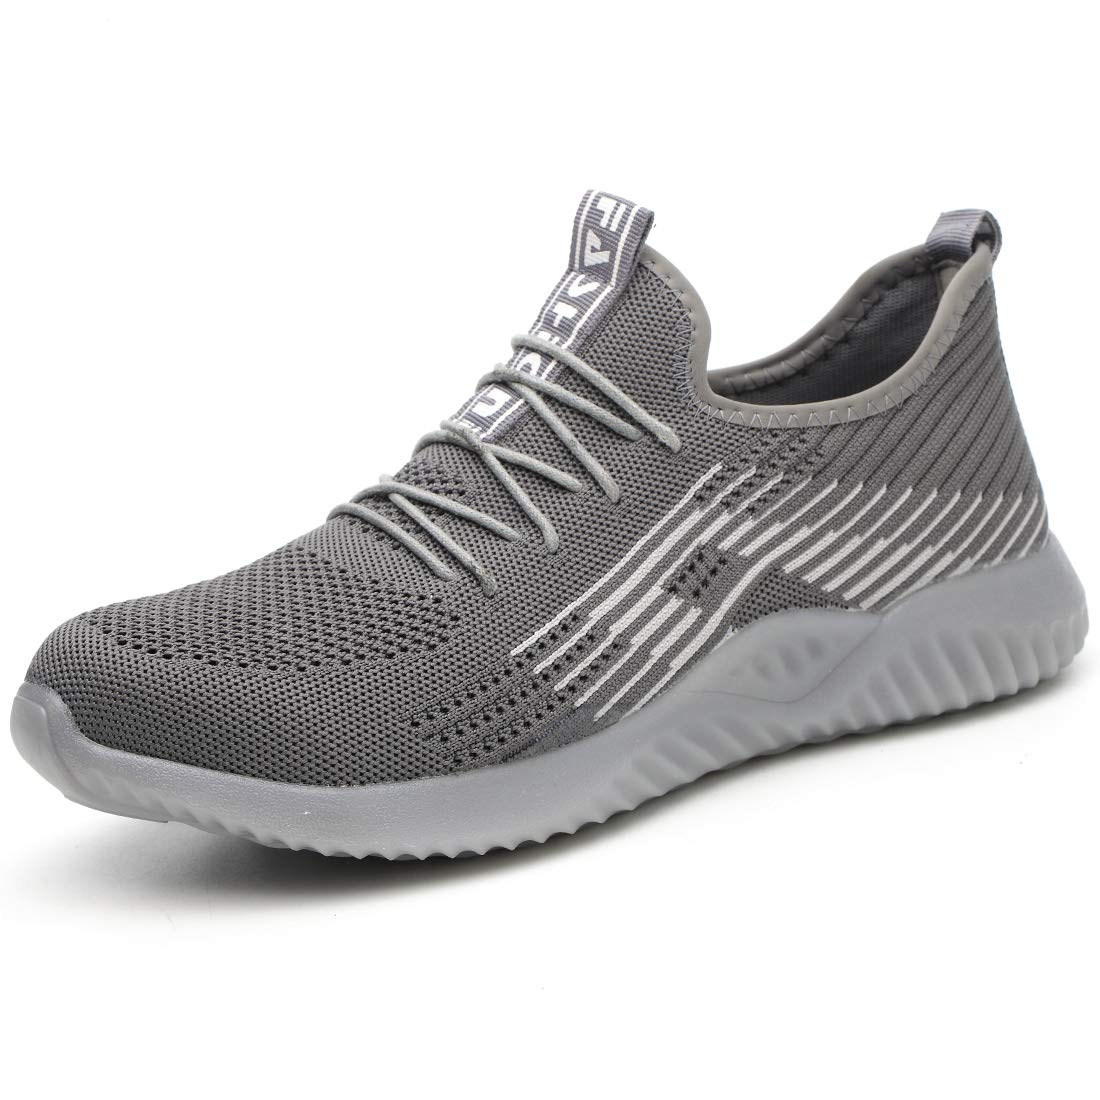 a07aeb8d6f871 BAOLESEM Steel Toe Work Shoes Women Men Summer Safety Sneakers Puncture  Proof Breathable Lightweight Industrial & Construction Shoes